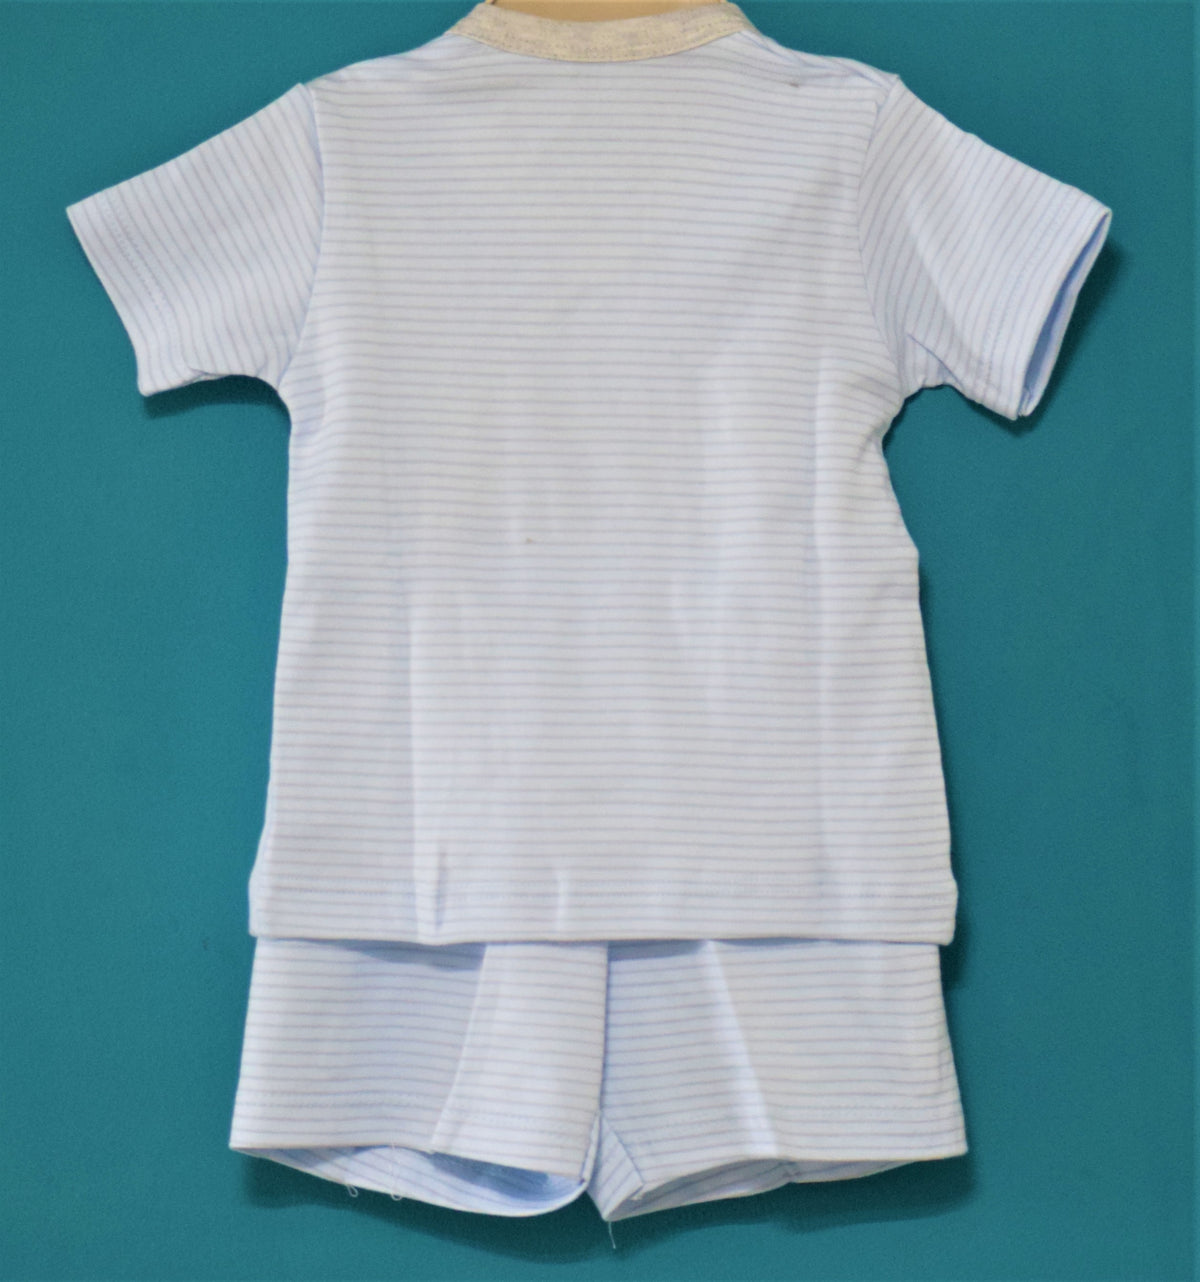 Newborn (0-3 M) Side Tie T-Shirt and Pant-Tiger-100% Cotton-Unisex